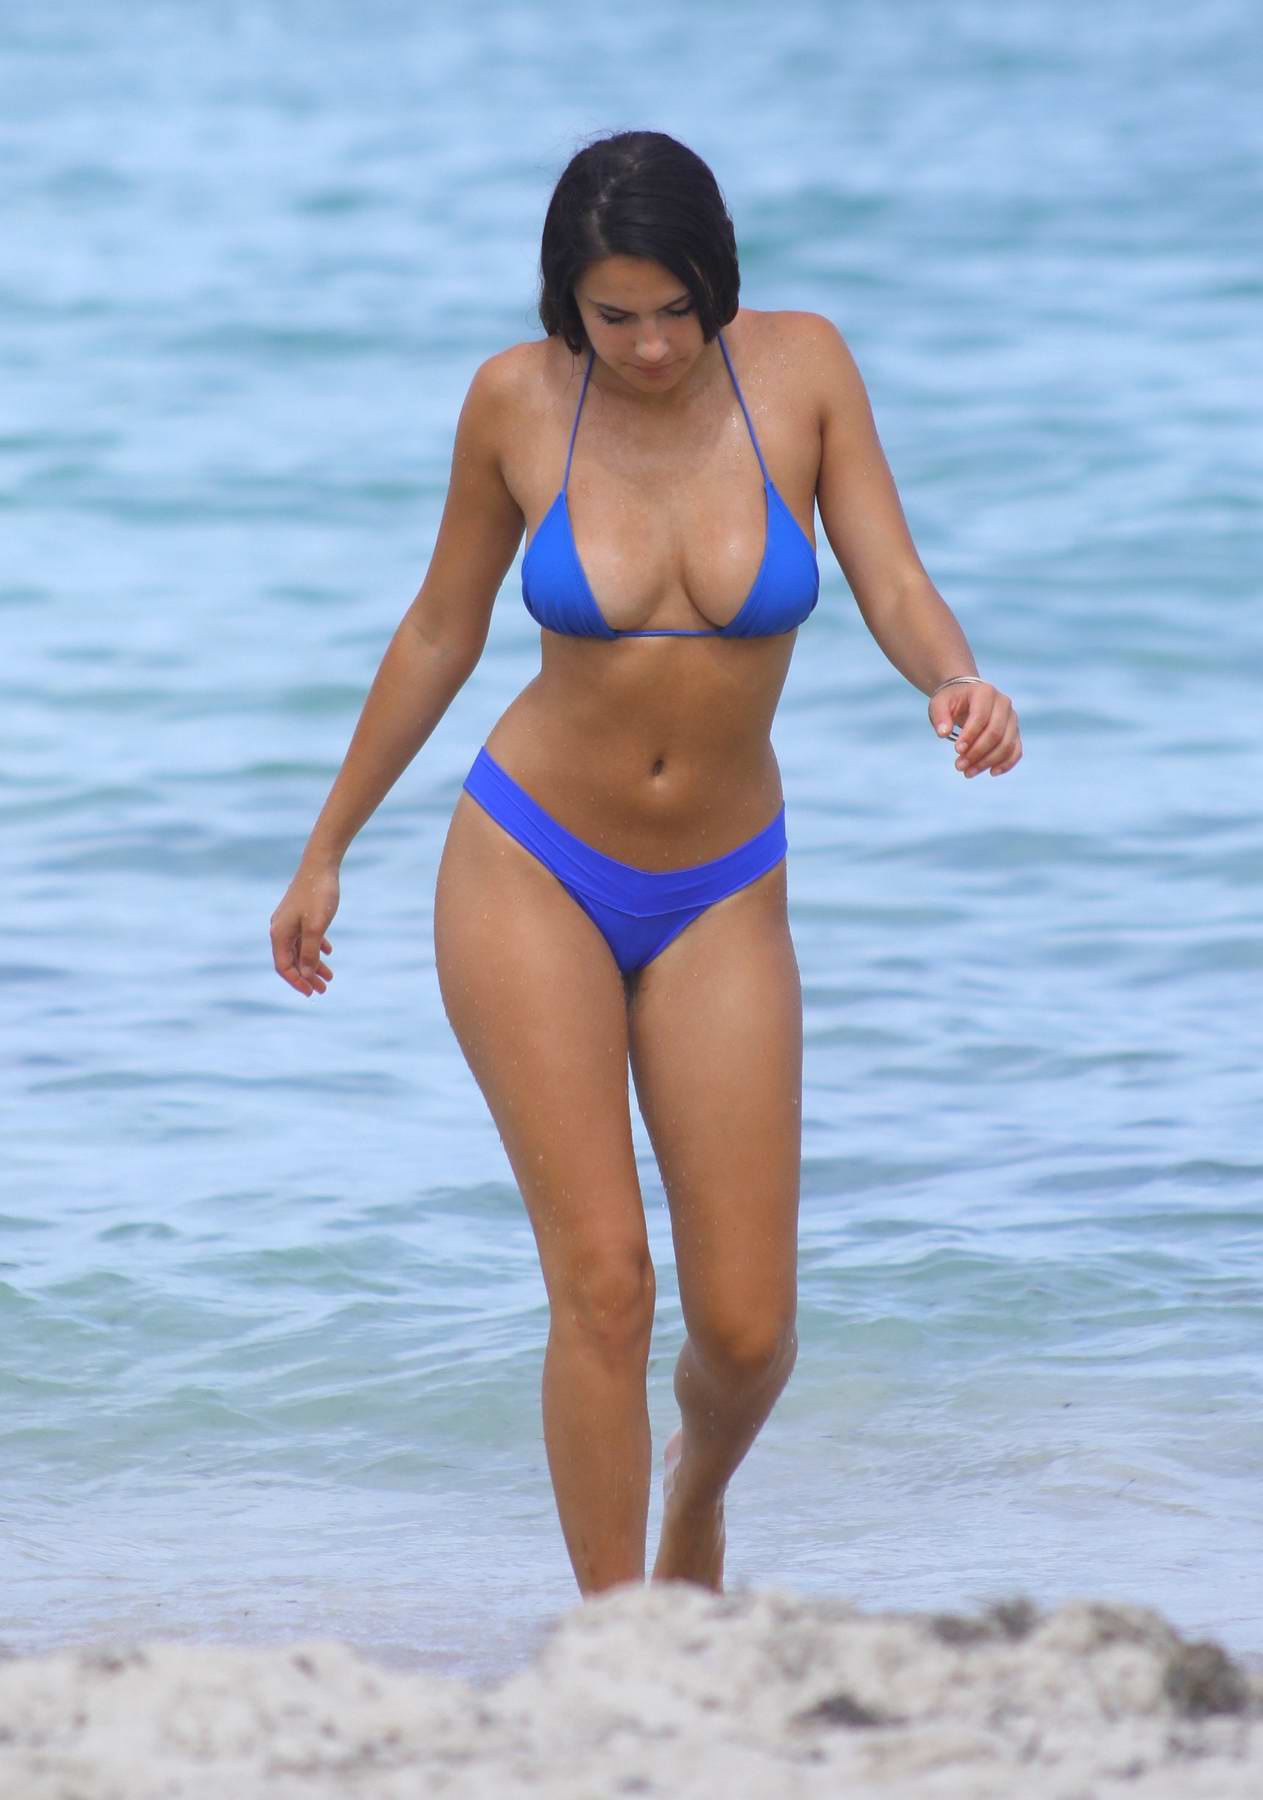 Tao Wickrath in a blue bikini relaxing at the beach in Miami